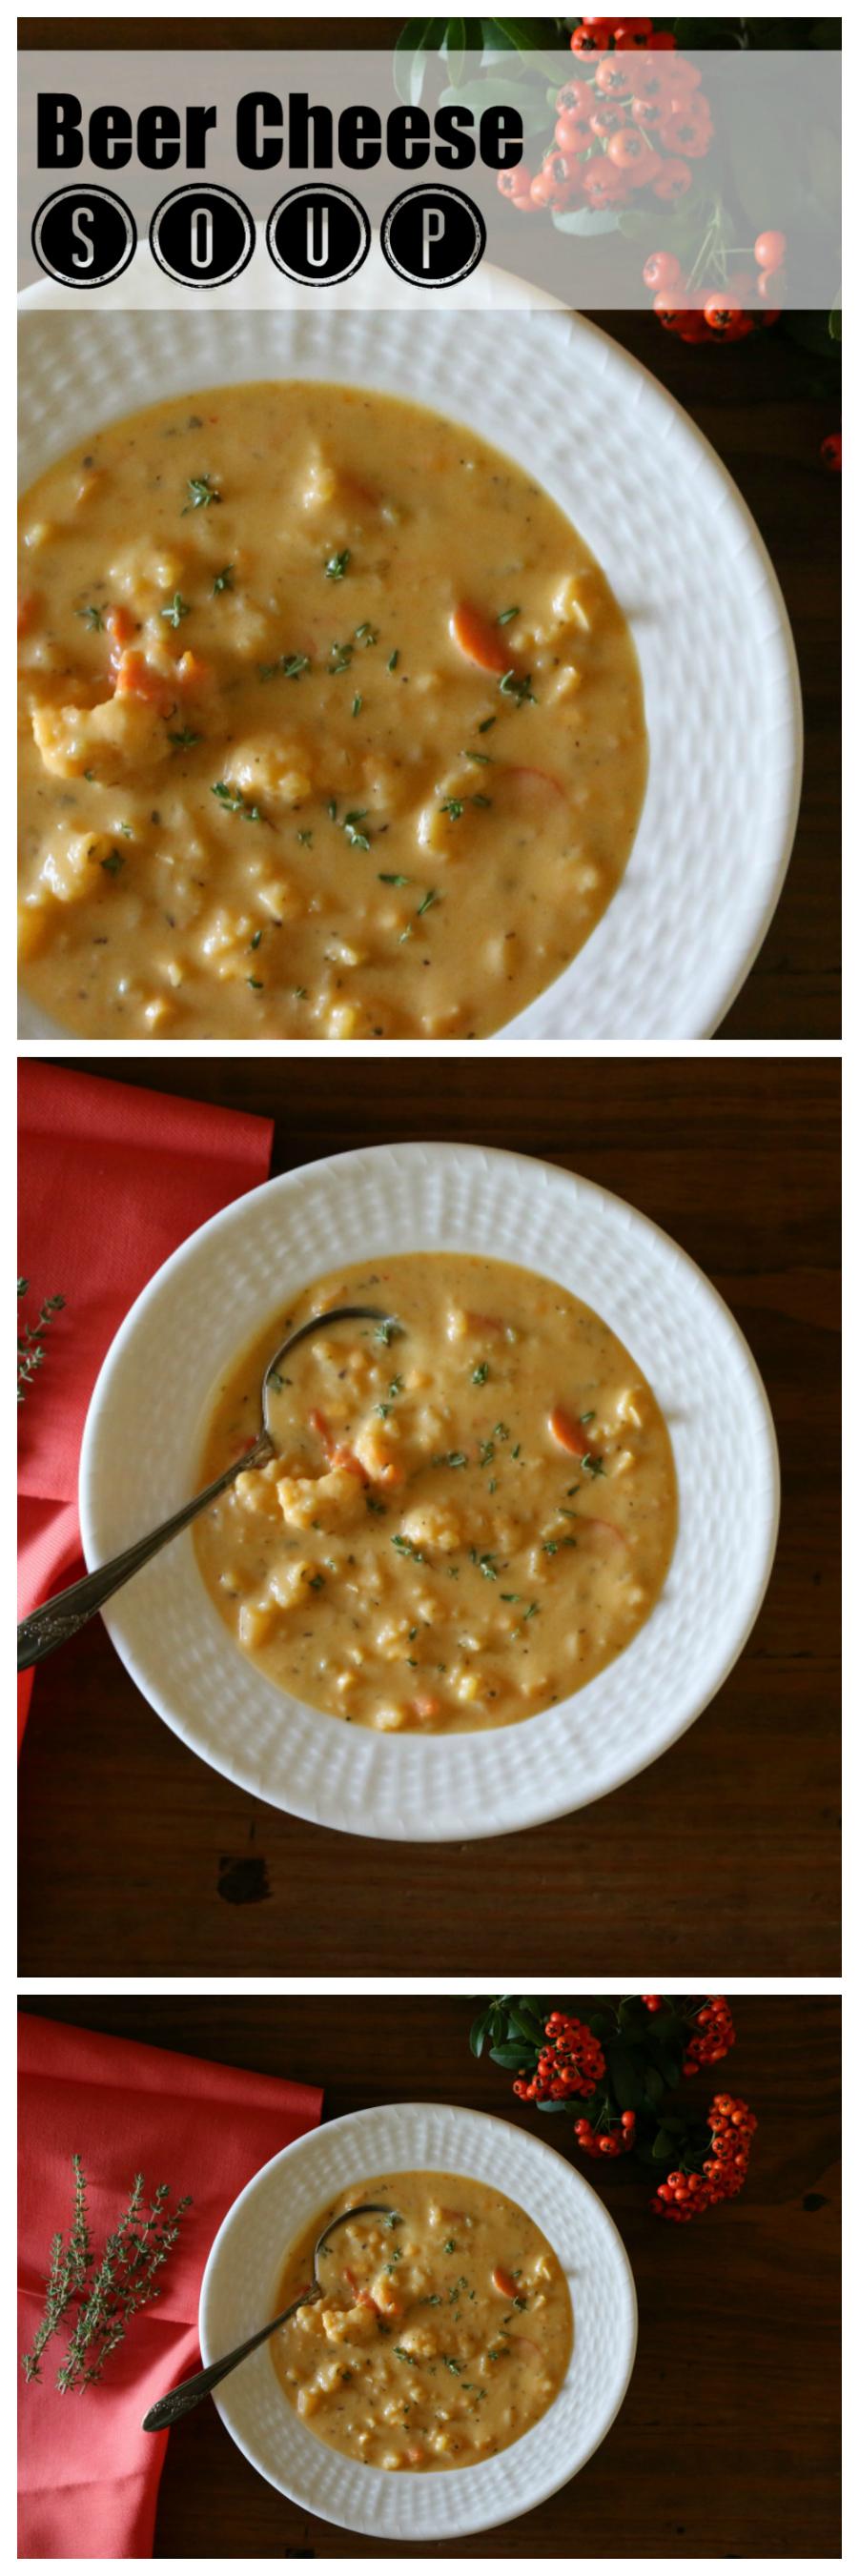 Beer Cheese Soup with Chunky vegetables like cauliflower and carrots. CeceliasGoodStuff.com   Good Food for Good People